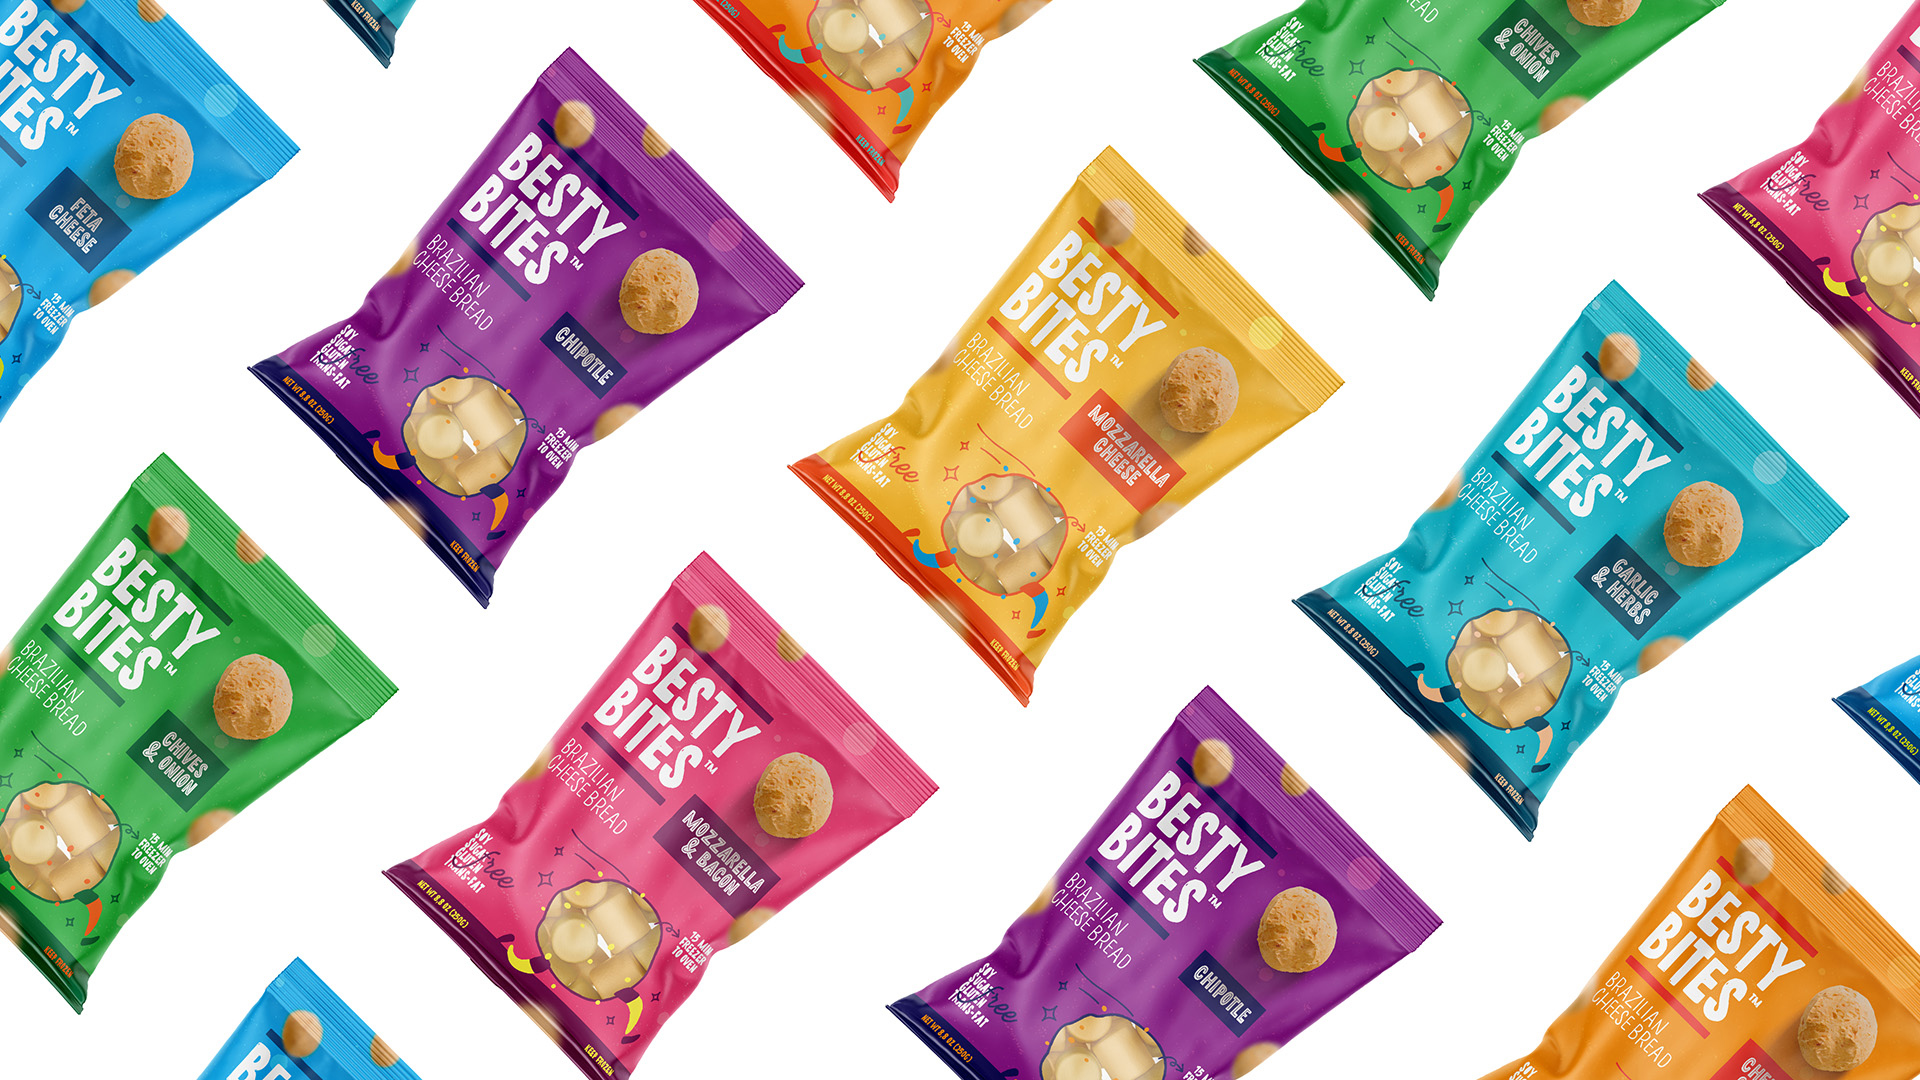 Feitoria Creates Packages for Brazilian Snacks Sold in the United States